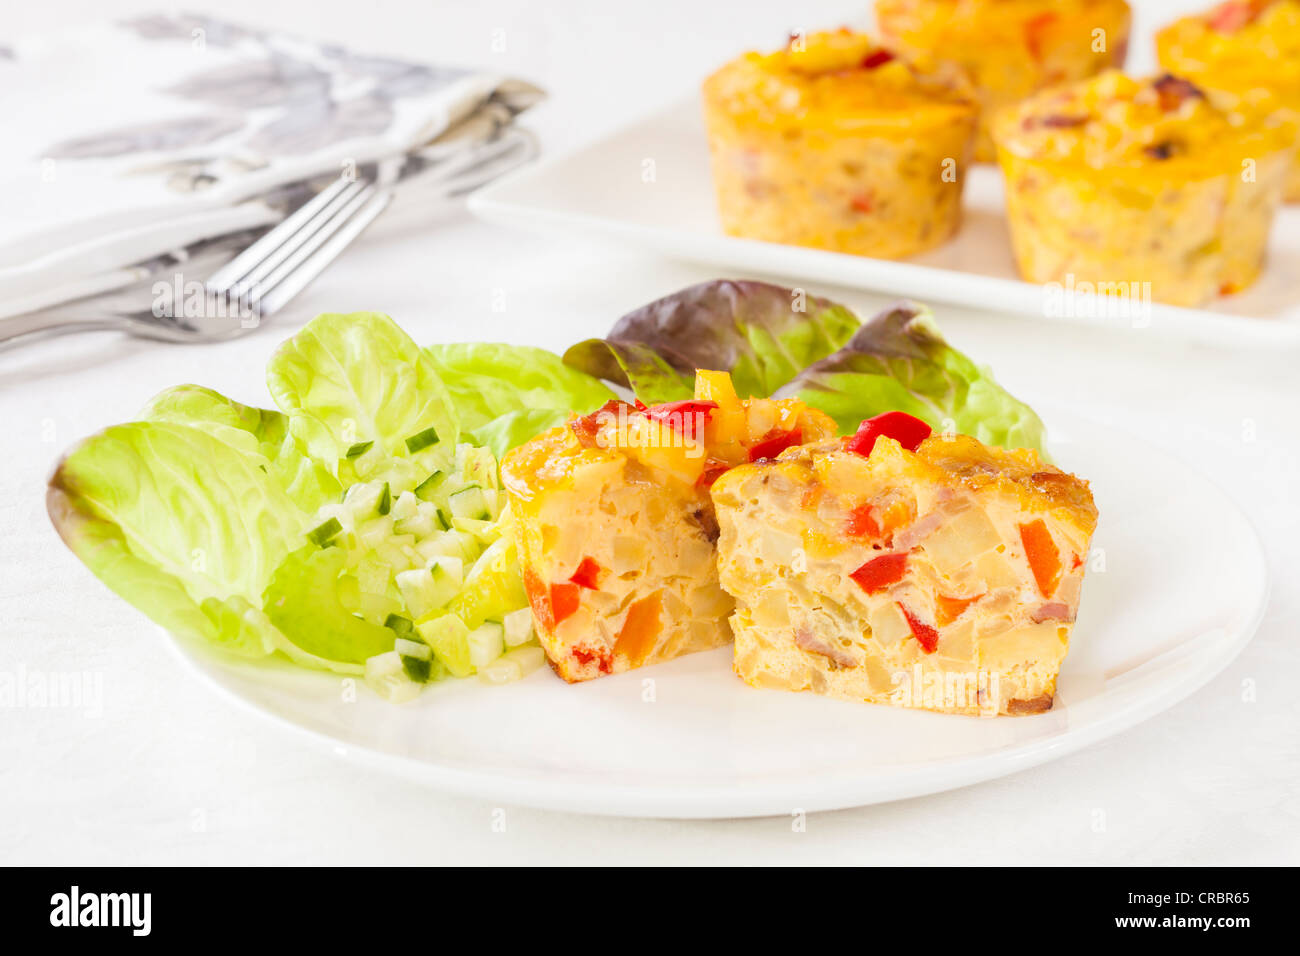 Mini frittata on a plate with salad. - Stock Image